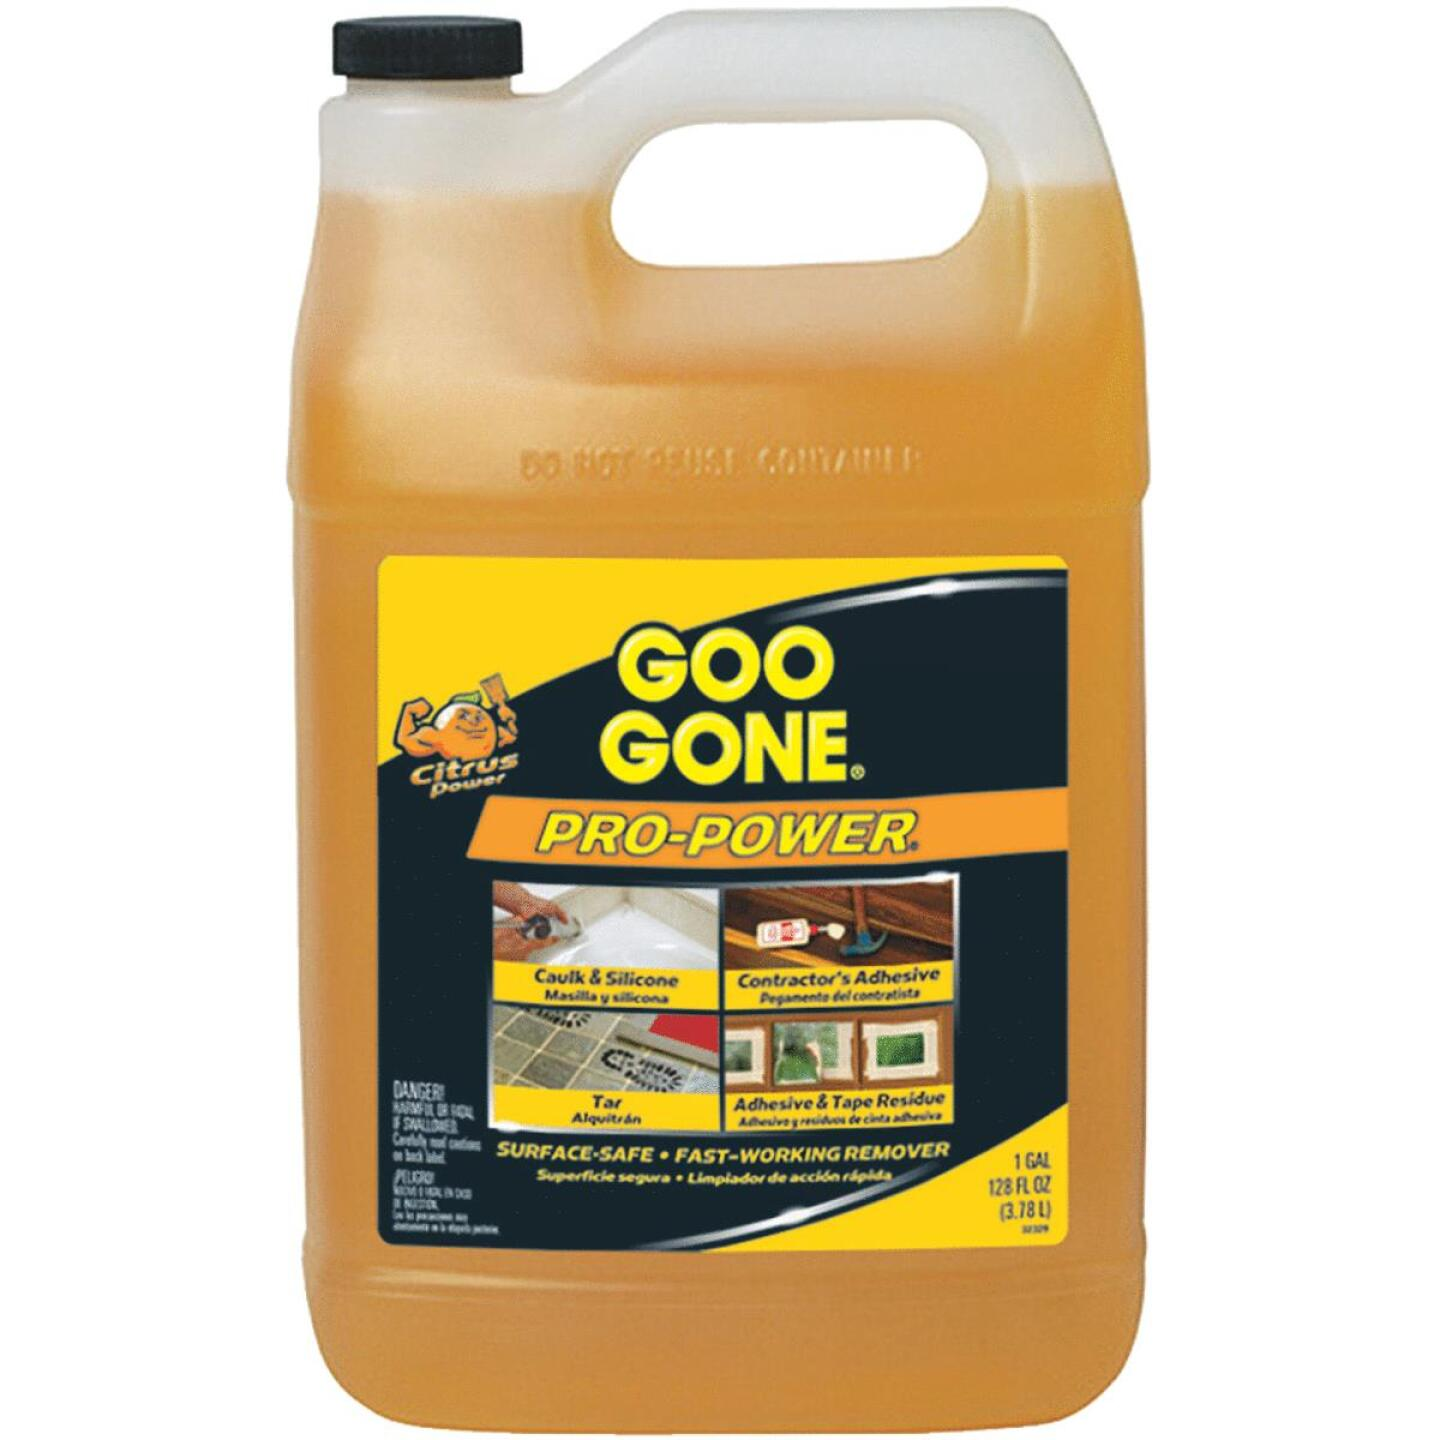 Goo Gone 1 Gal. Pro-Power Adhesive Remover Image 150